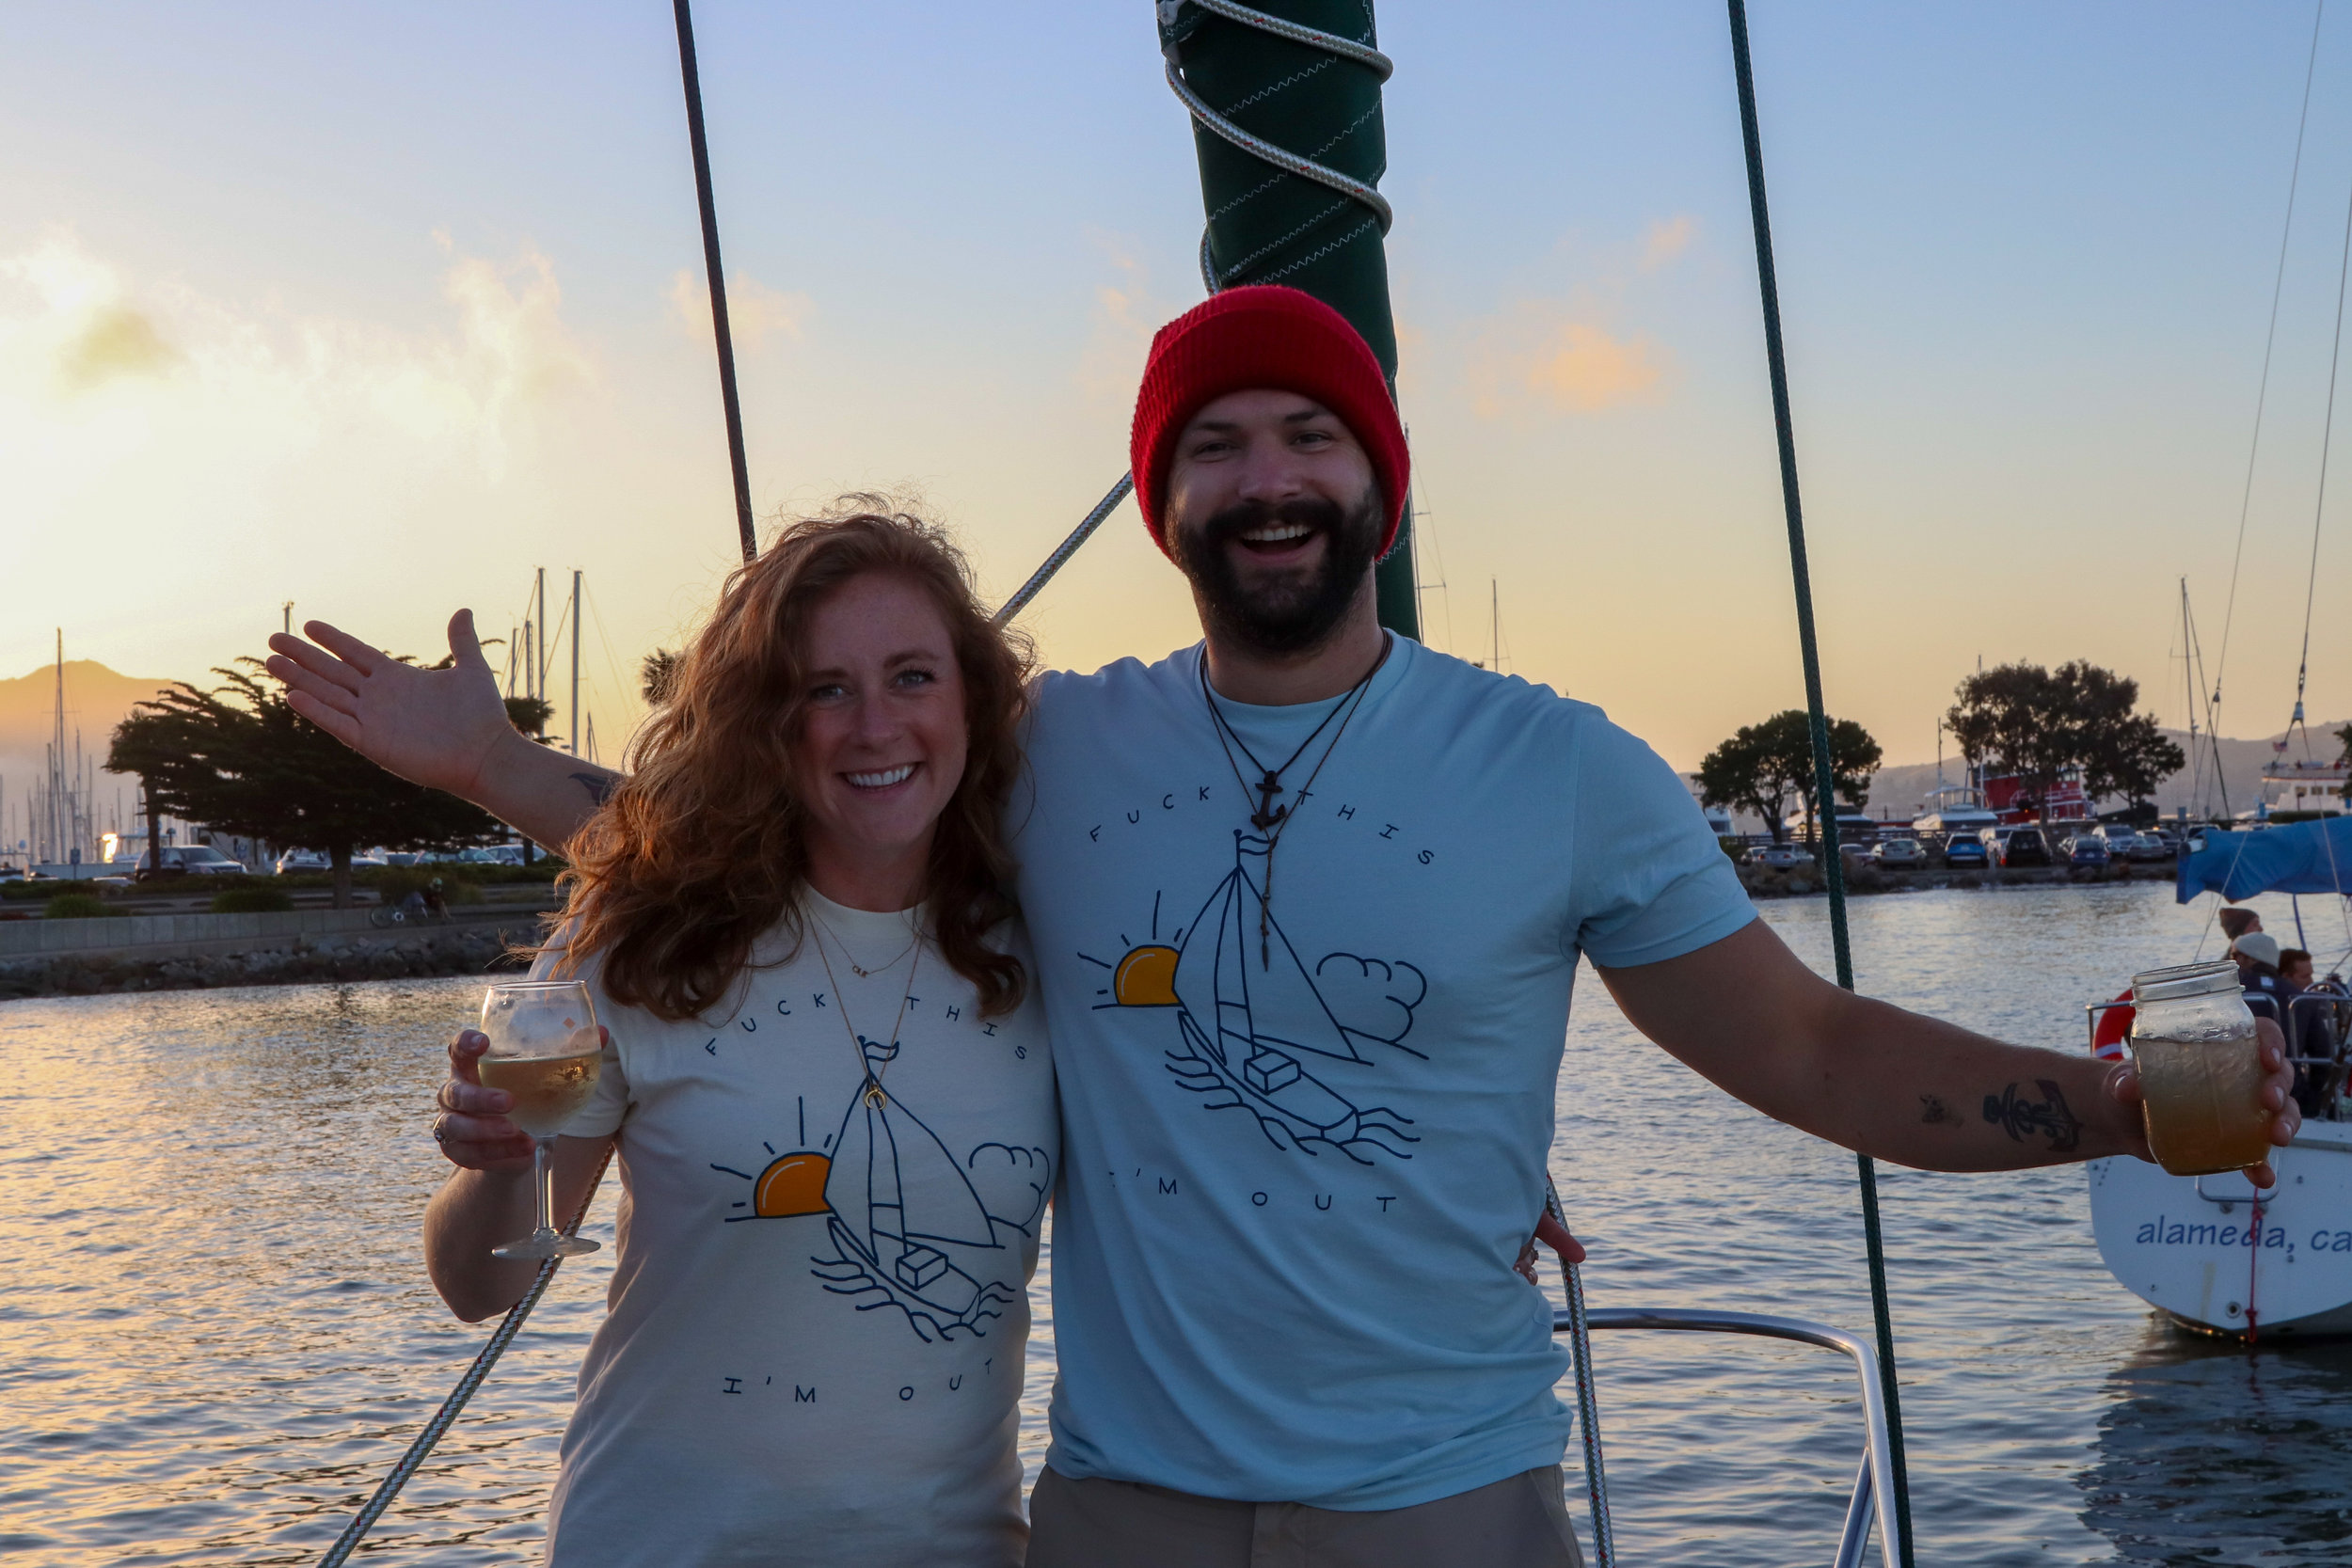 We quit our jobs to travel and sail the world - here are our travel plans!